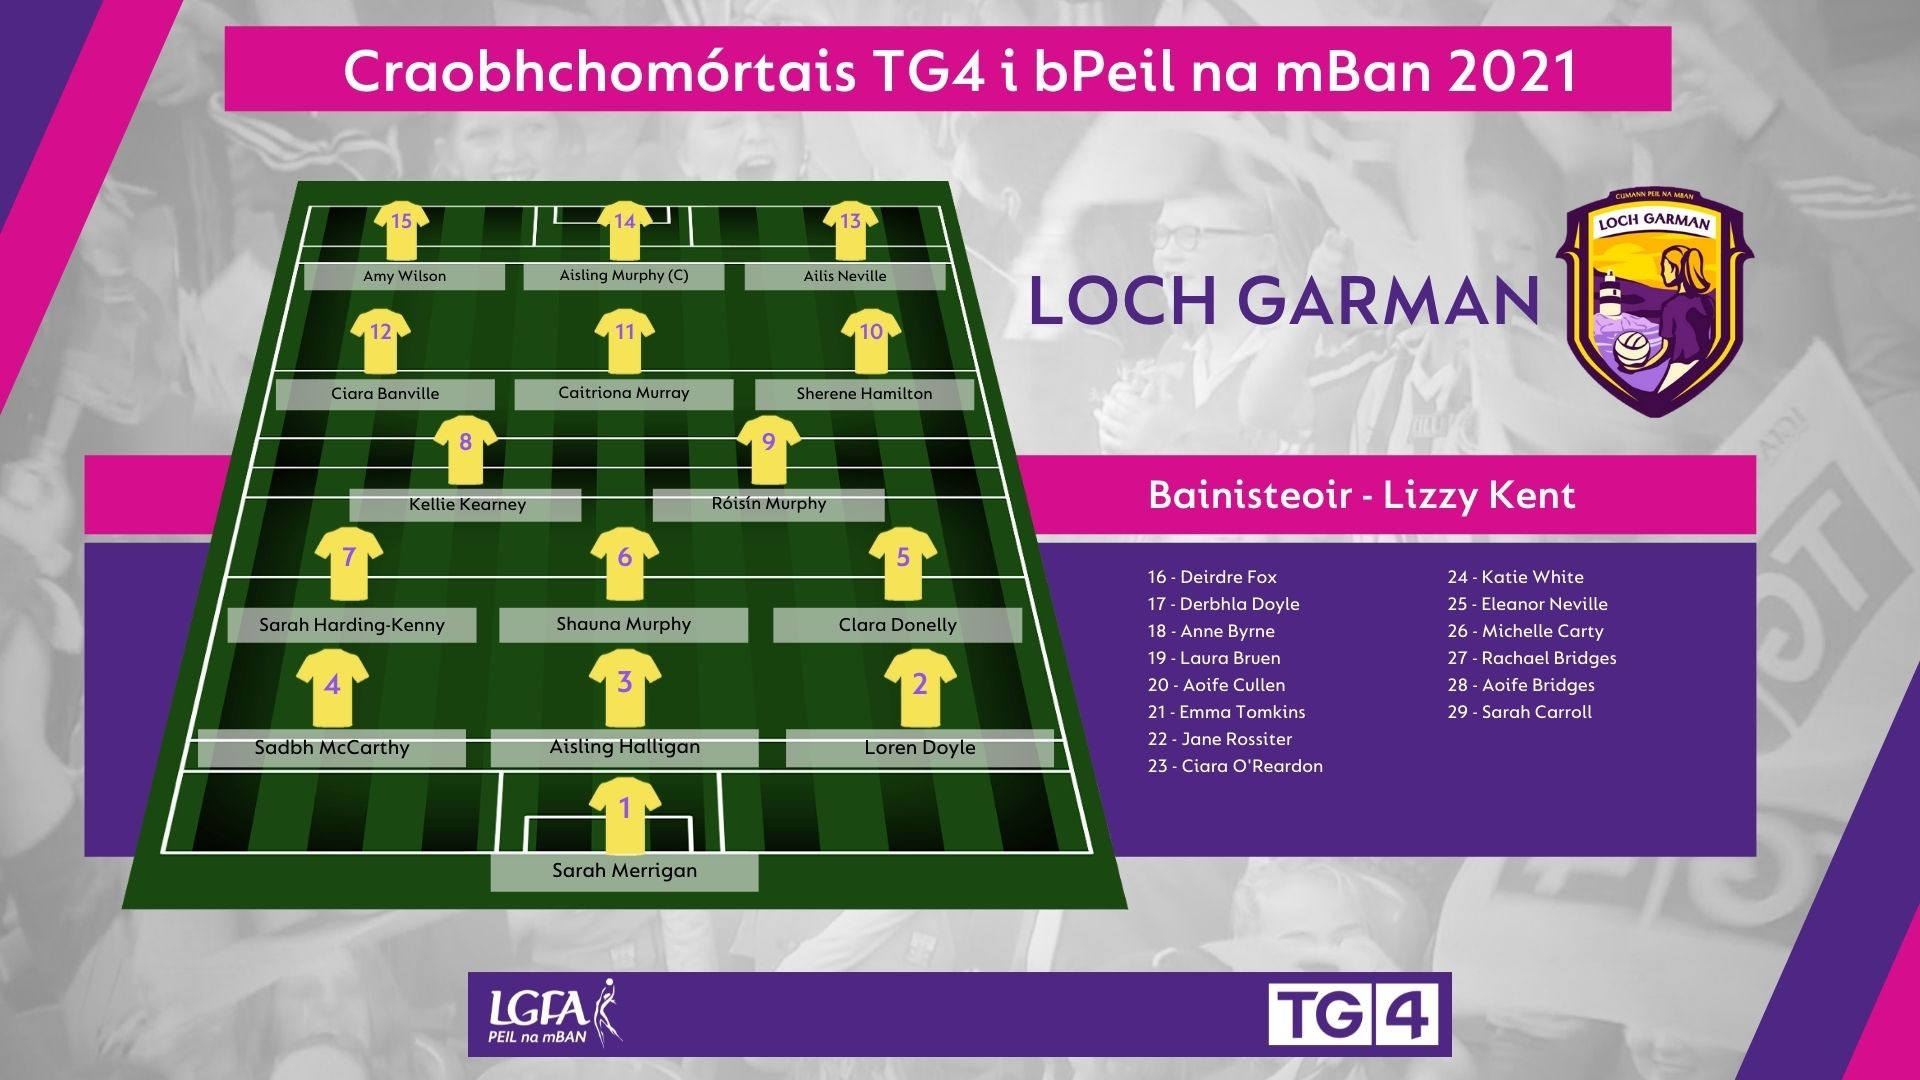 Image of Wexford team selection in the match programme for the 2021 TG4 All Ireland Ladies Football Championship finals on Sunday.